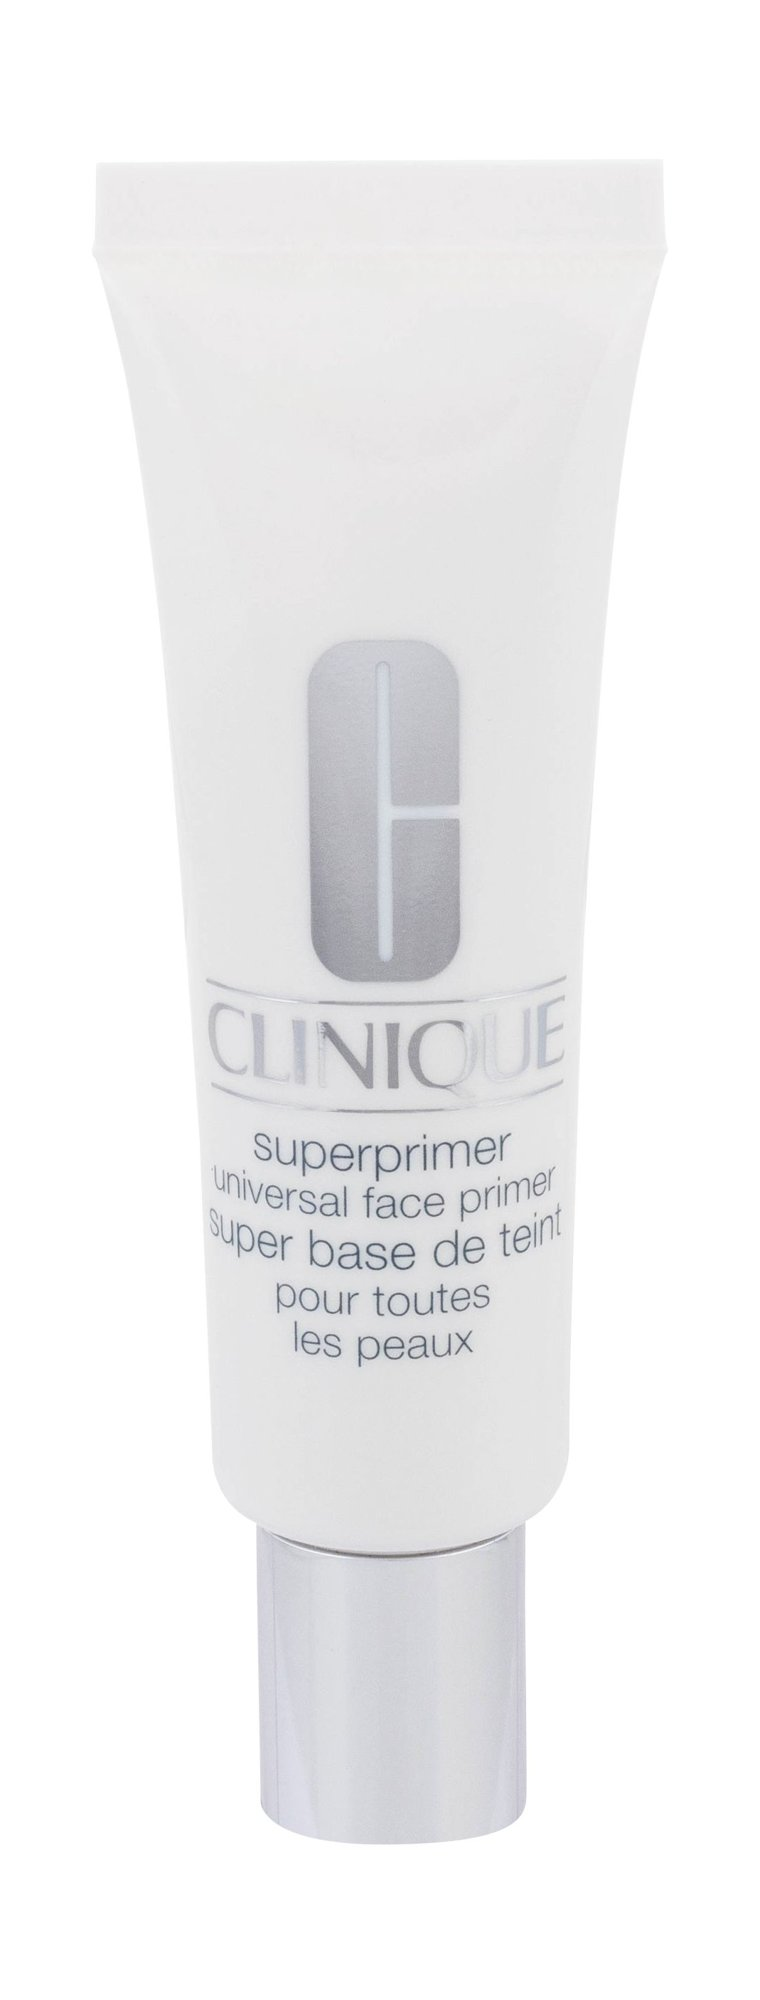 Clinique Superprimer Cosmetic 30ml